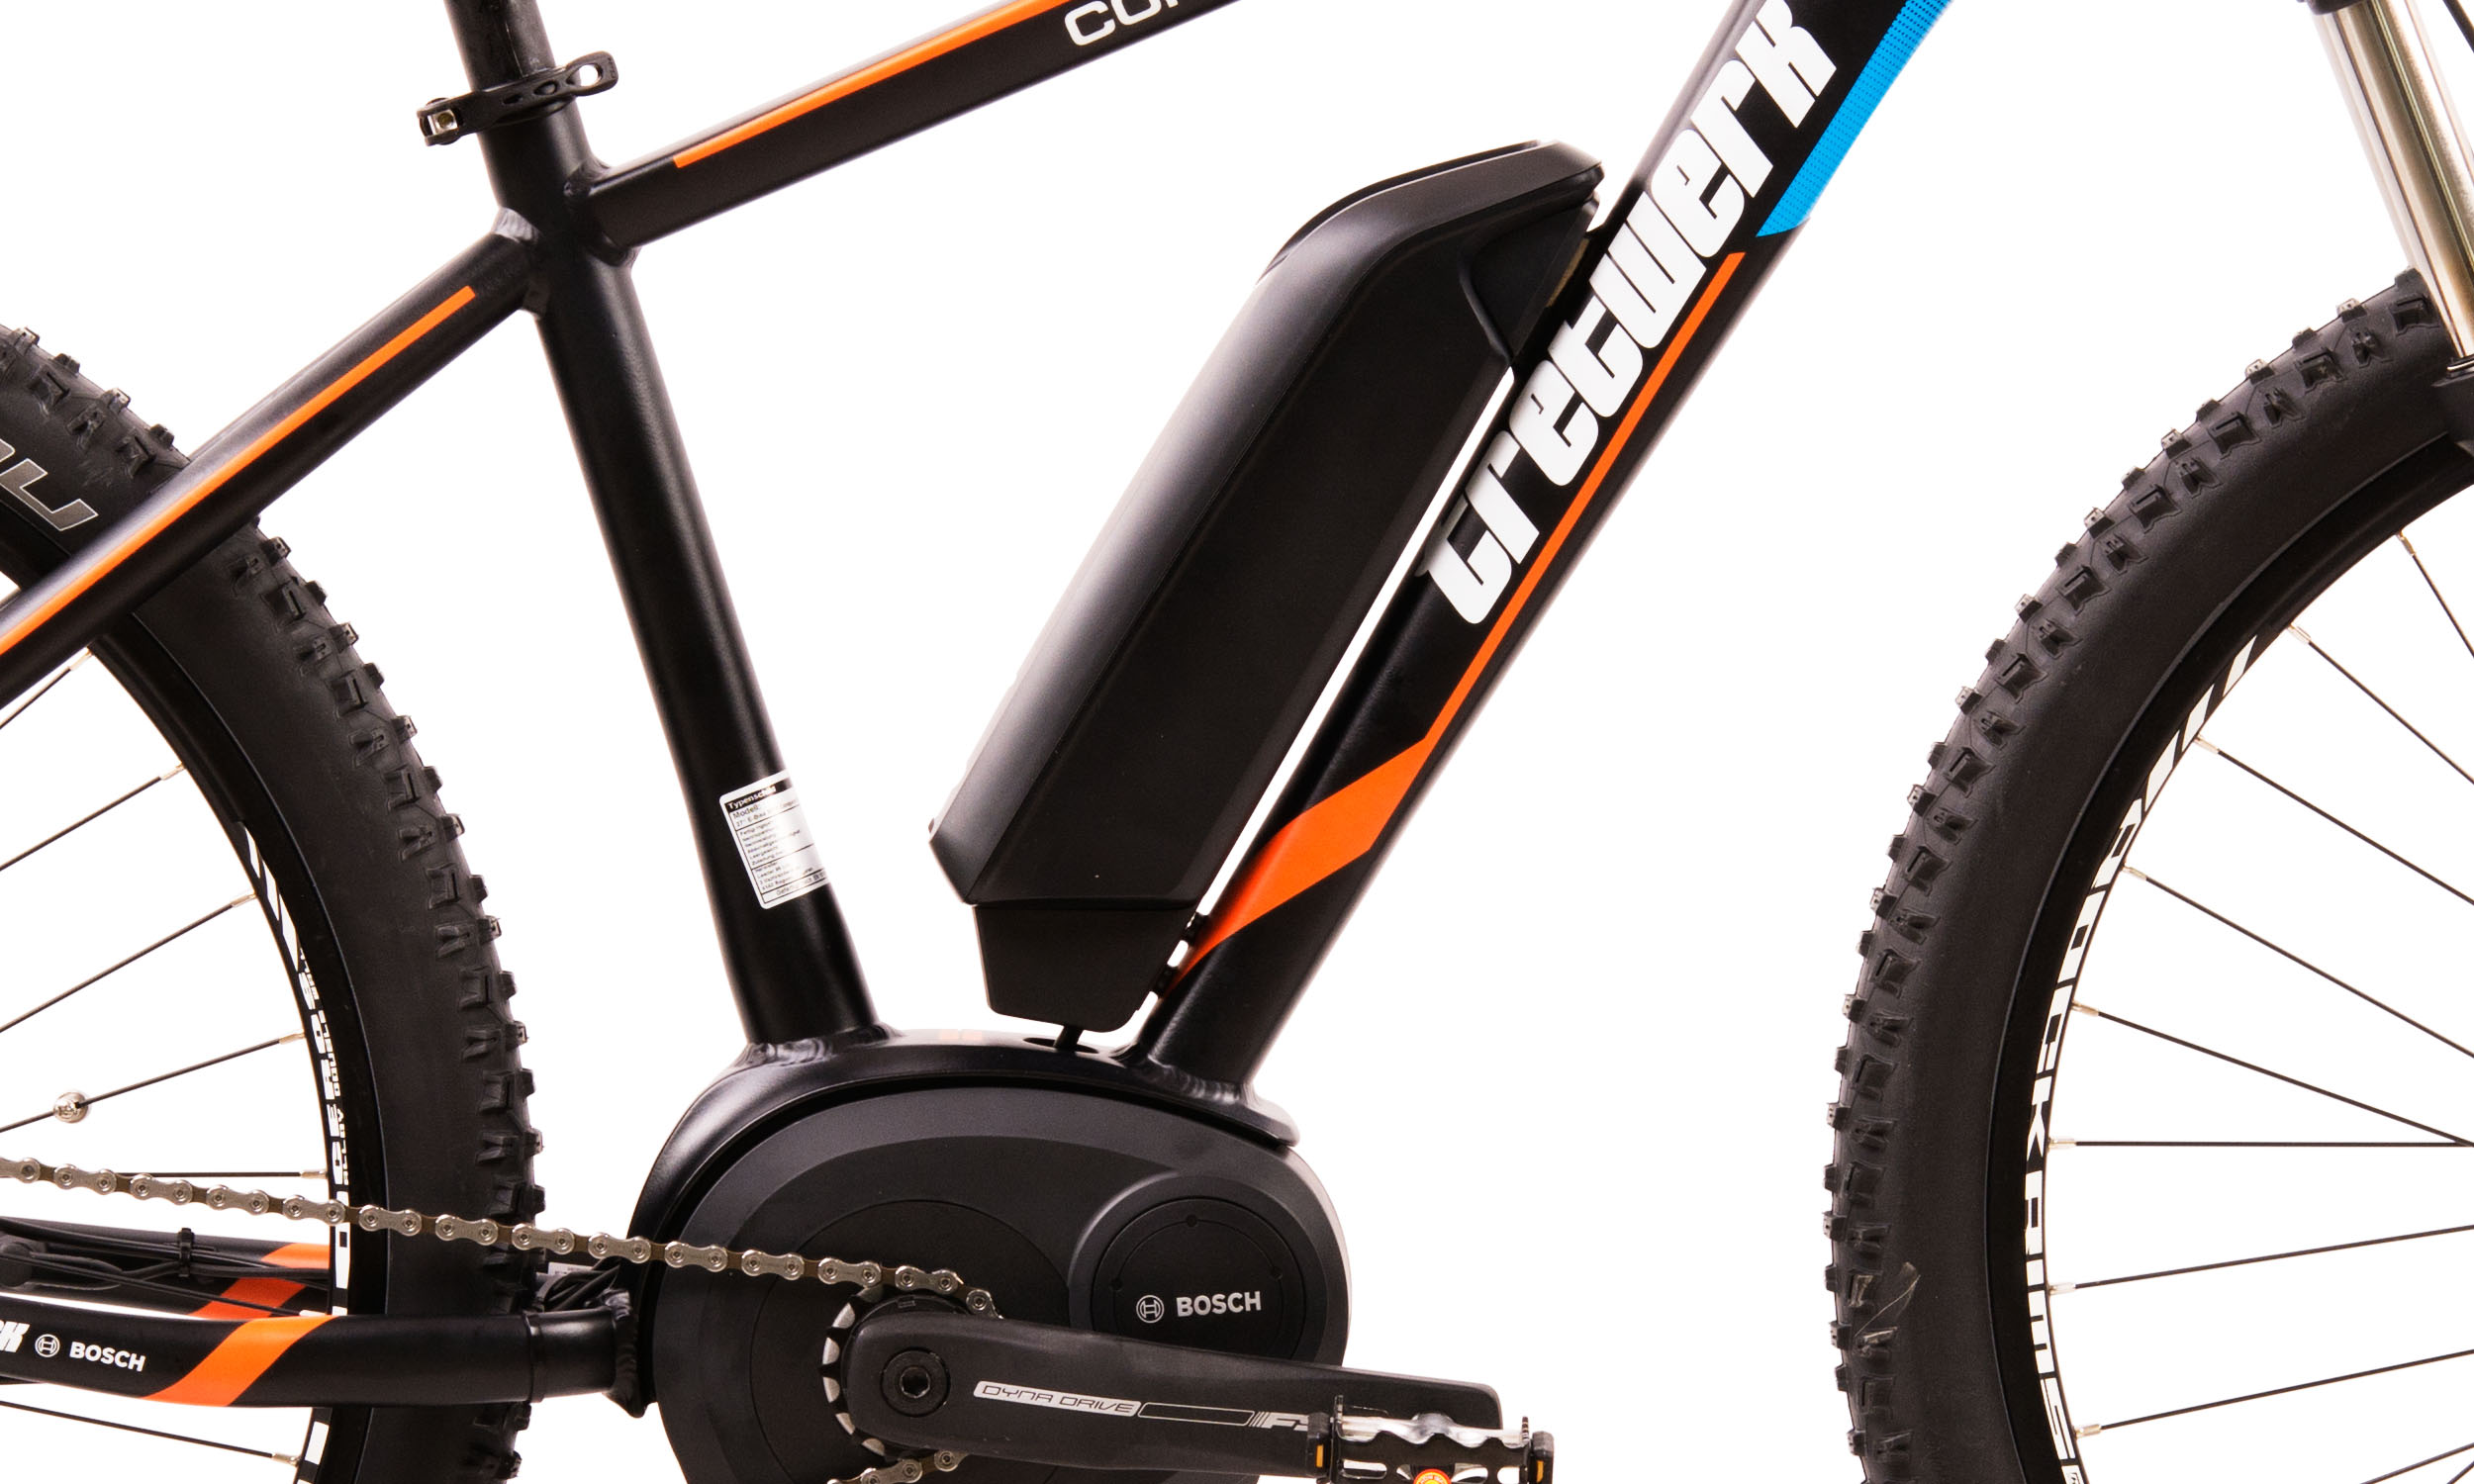 tretwerk concueror xc 27 5 zoll e mountainbike schwarz 2017 e mountainbikes. Black Bedroom Furniture Sets. Home Design Ideas